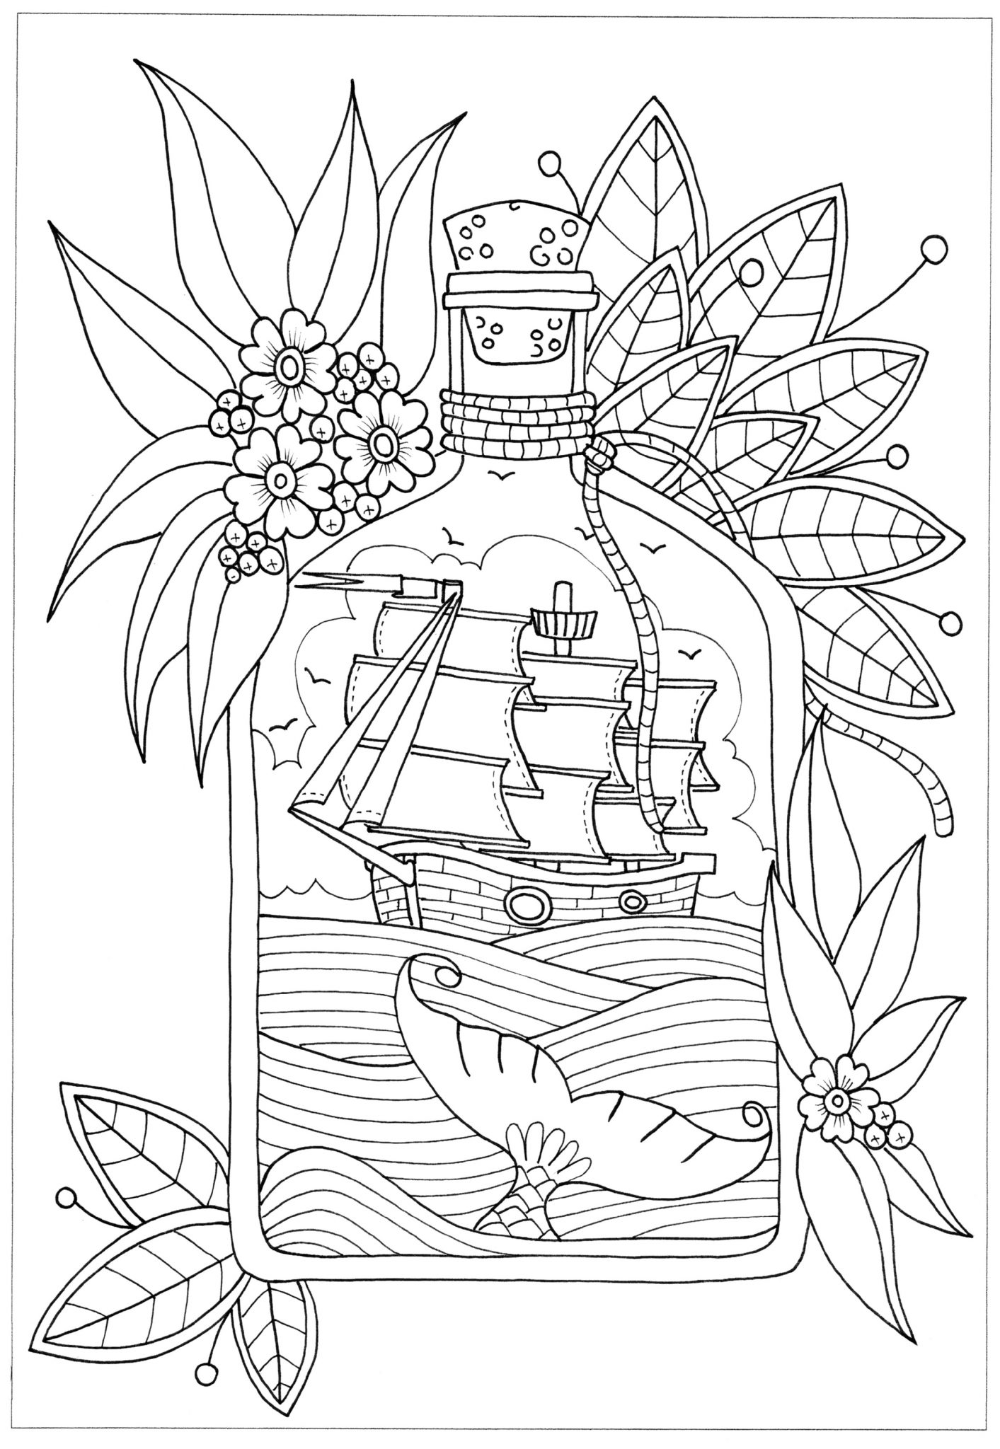 Printable Pirate Color Pages 101 Activity Coloring Pages Coloring Books Doodle Coloring